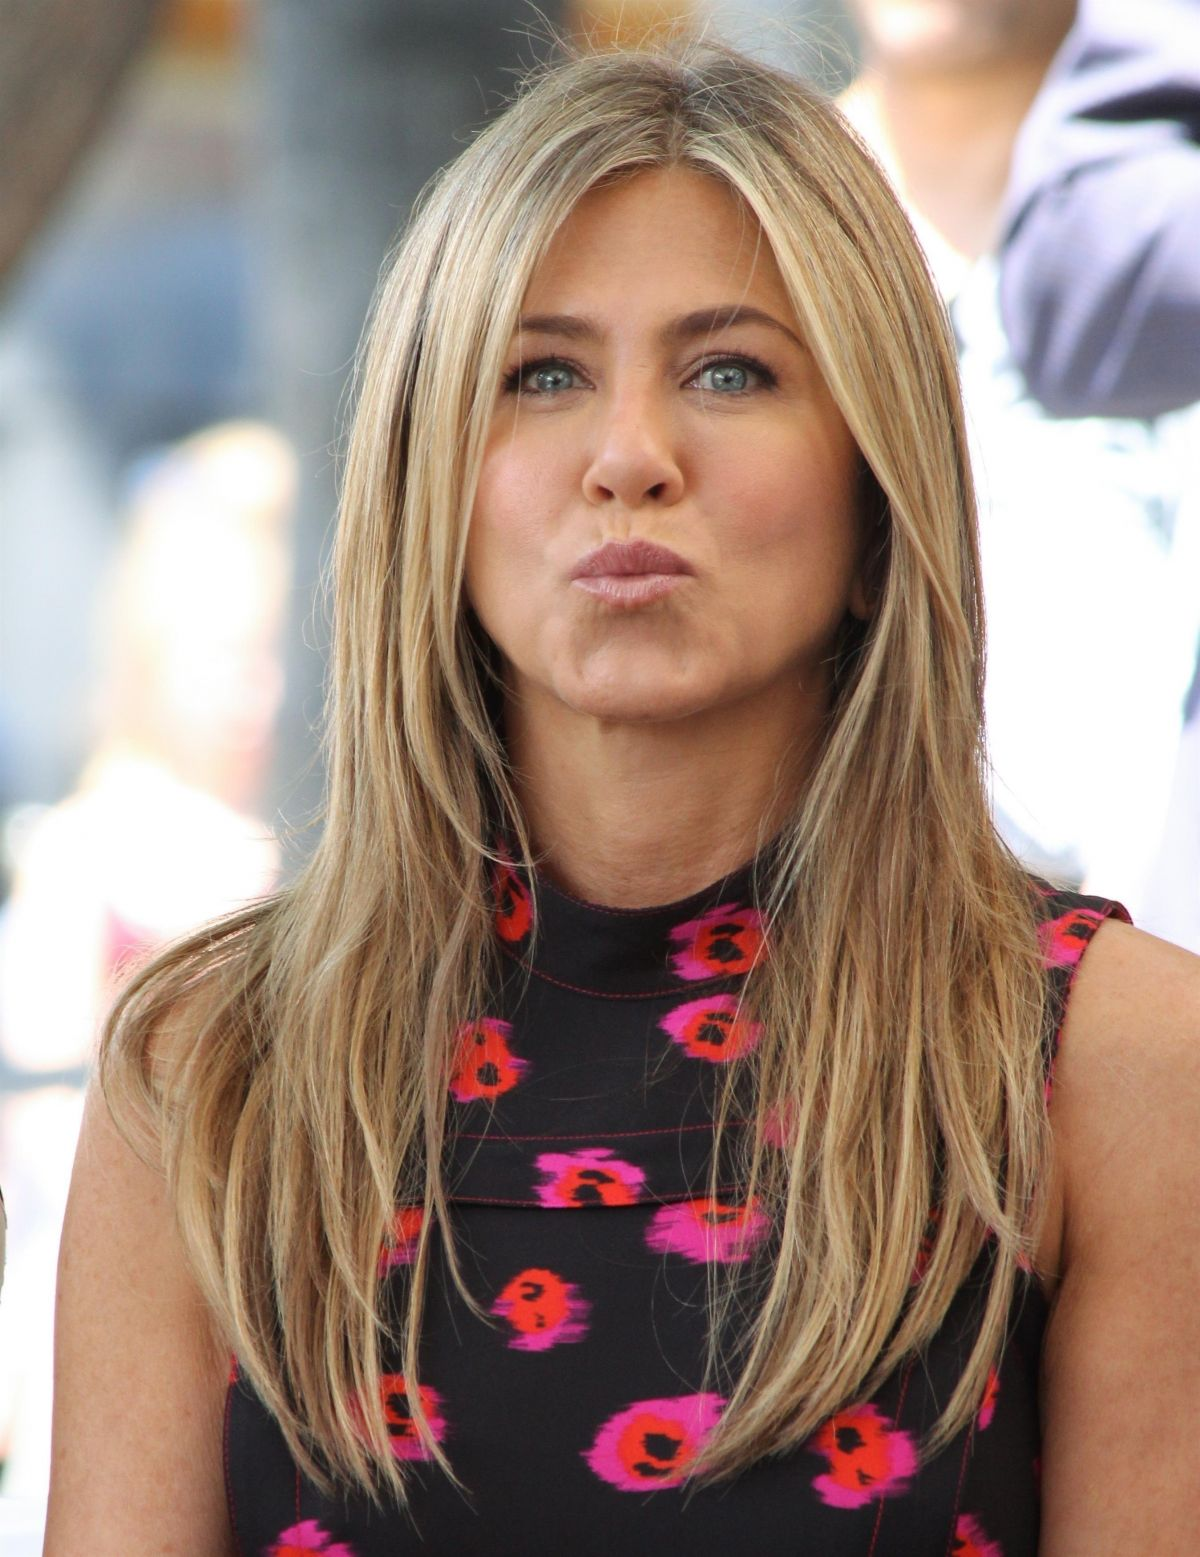 Jennifer Aniston At Jason Bateman's Hollywood Star Ceremony in Hollywood   jennifer-aniston-at-jason-bateman-s-hollywood-star-ceremony-in-hollywood_7